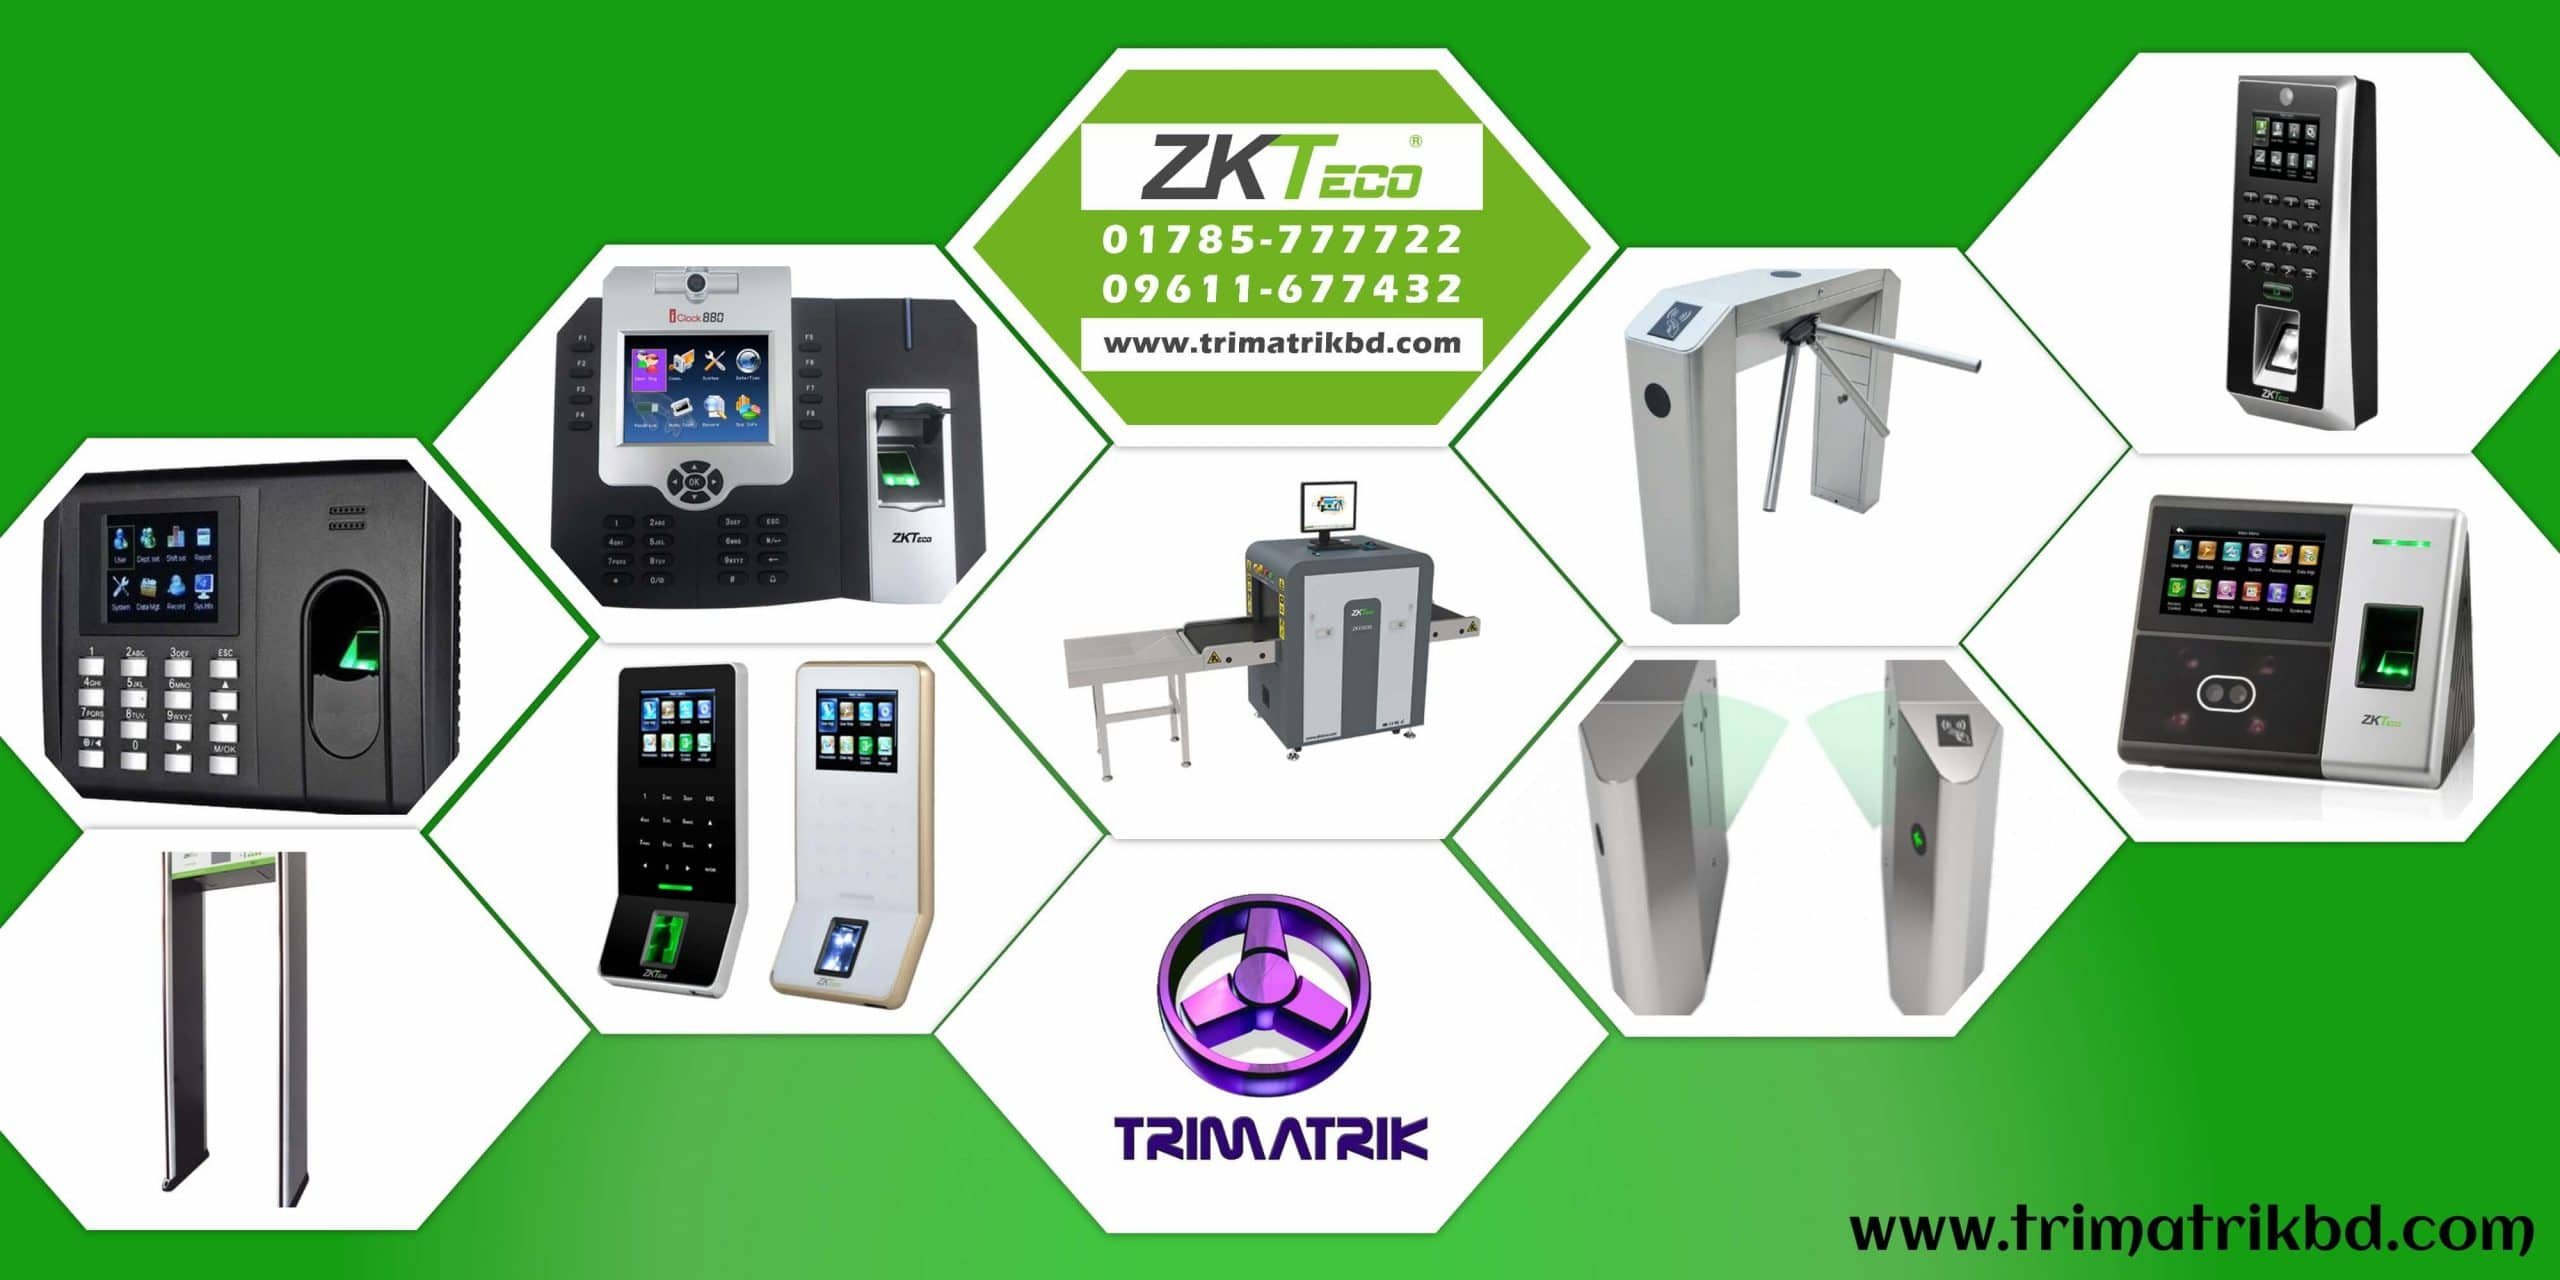 ZKTeco Time Attendance & Access Control in Bangladesh